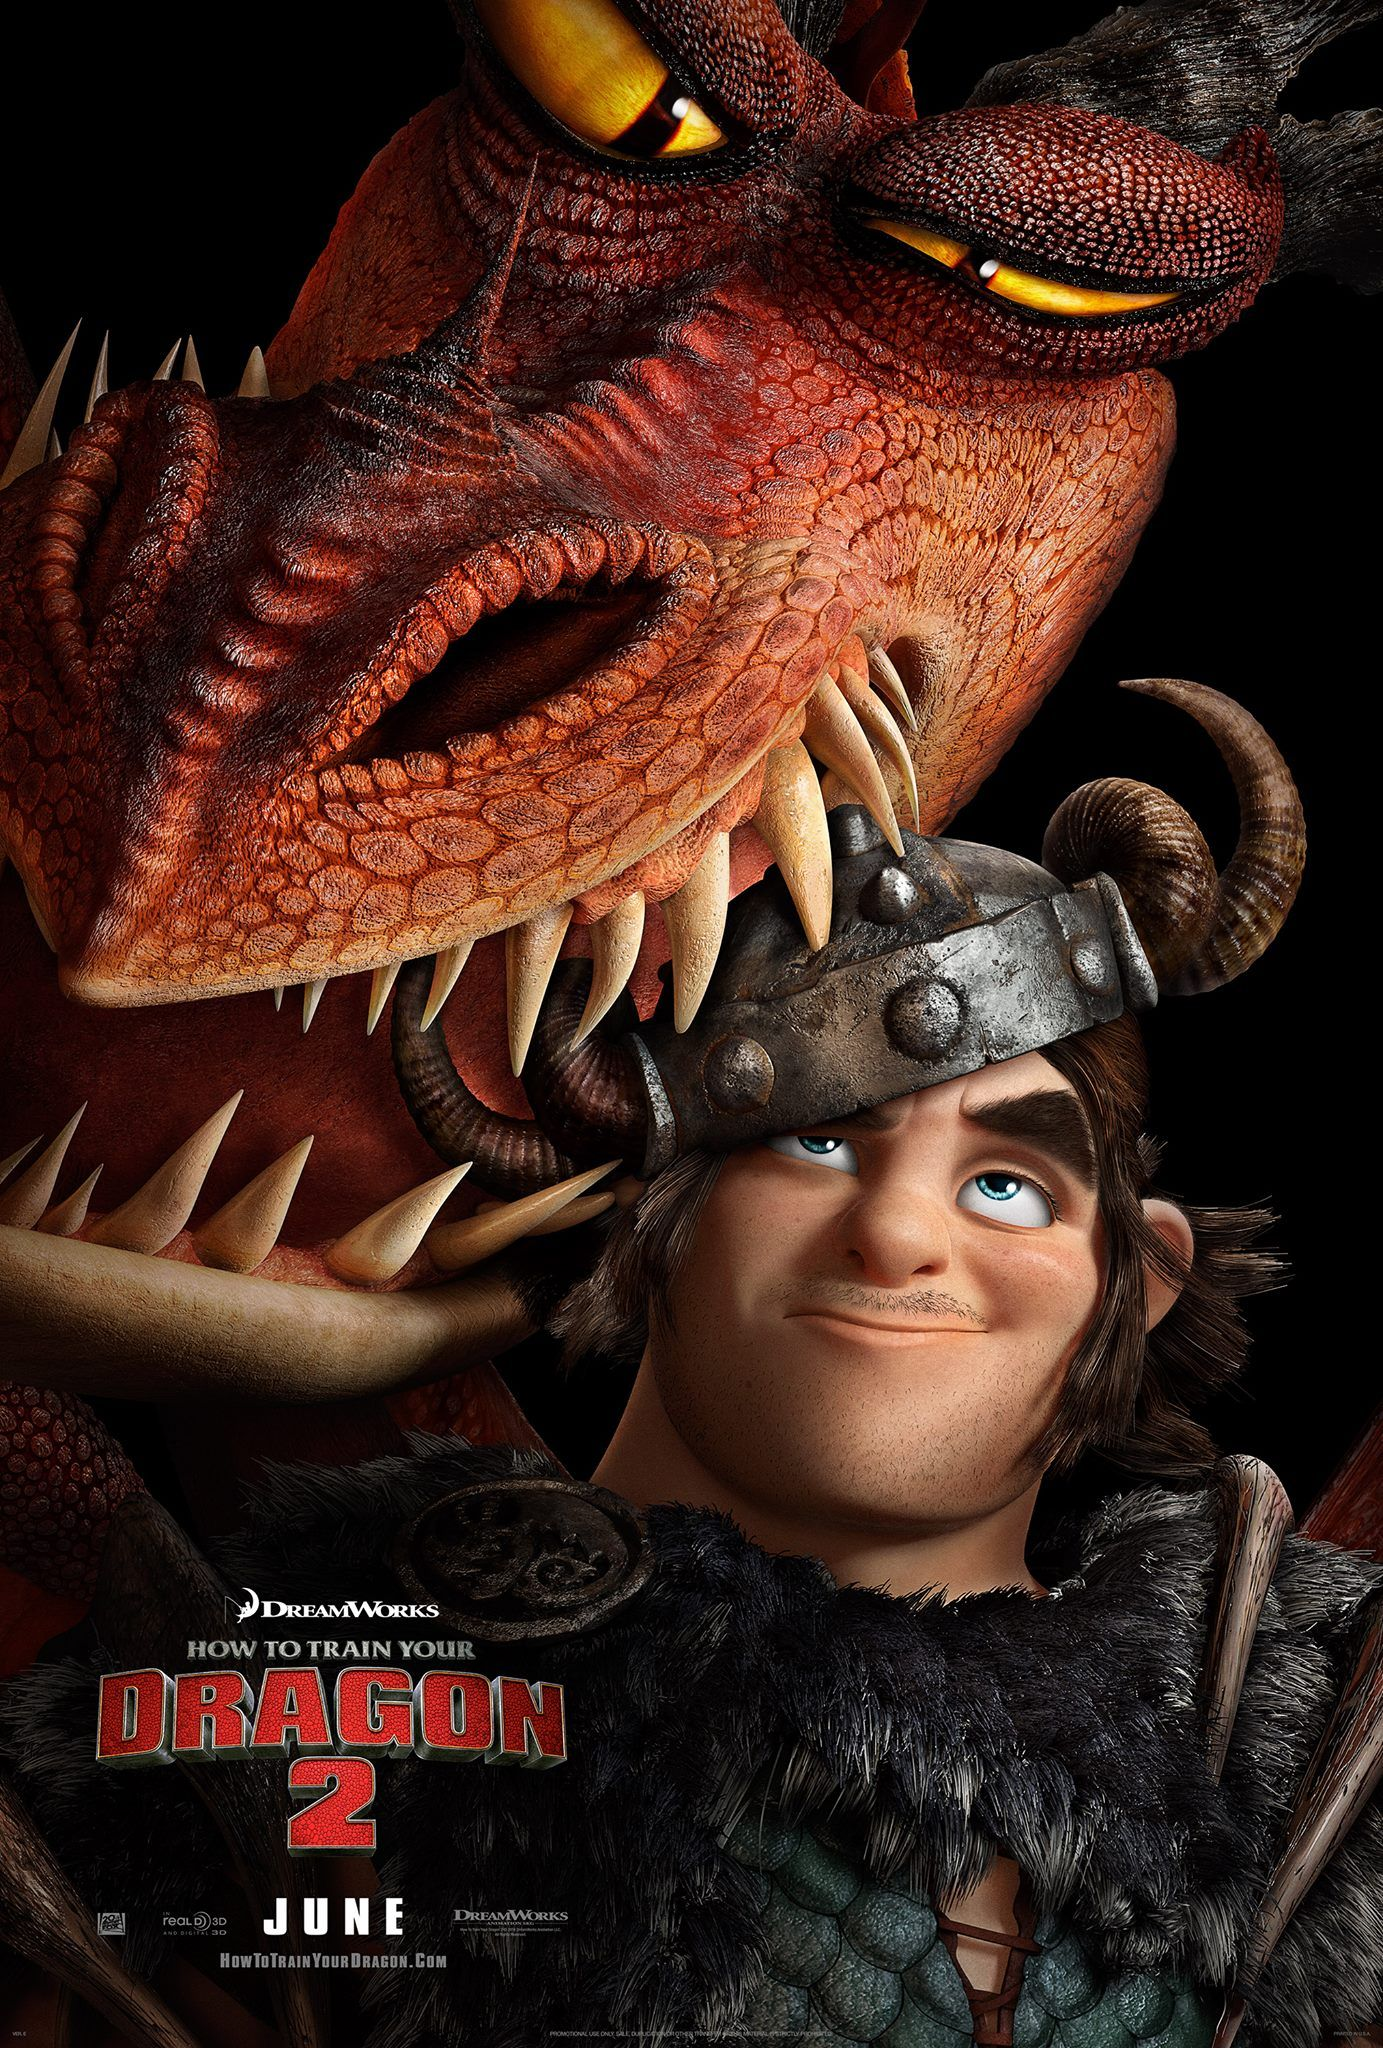 How to train your dragon 2 jonah hill how to train your dragon 2 ccuart Gallery